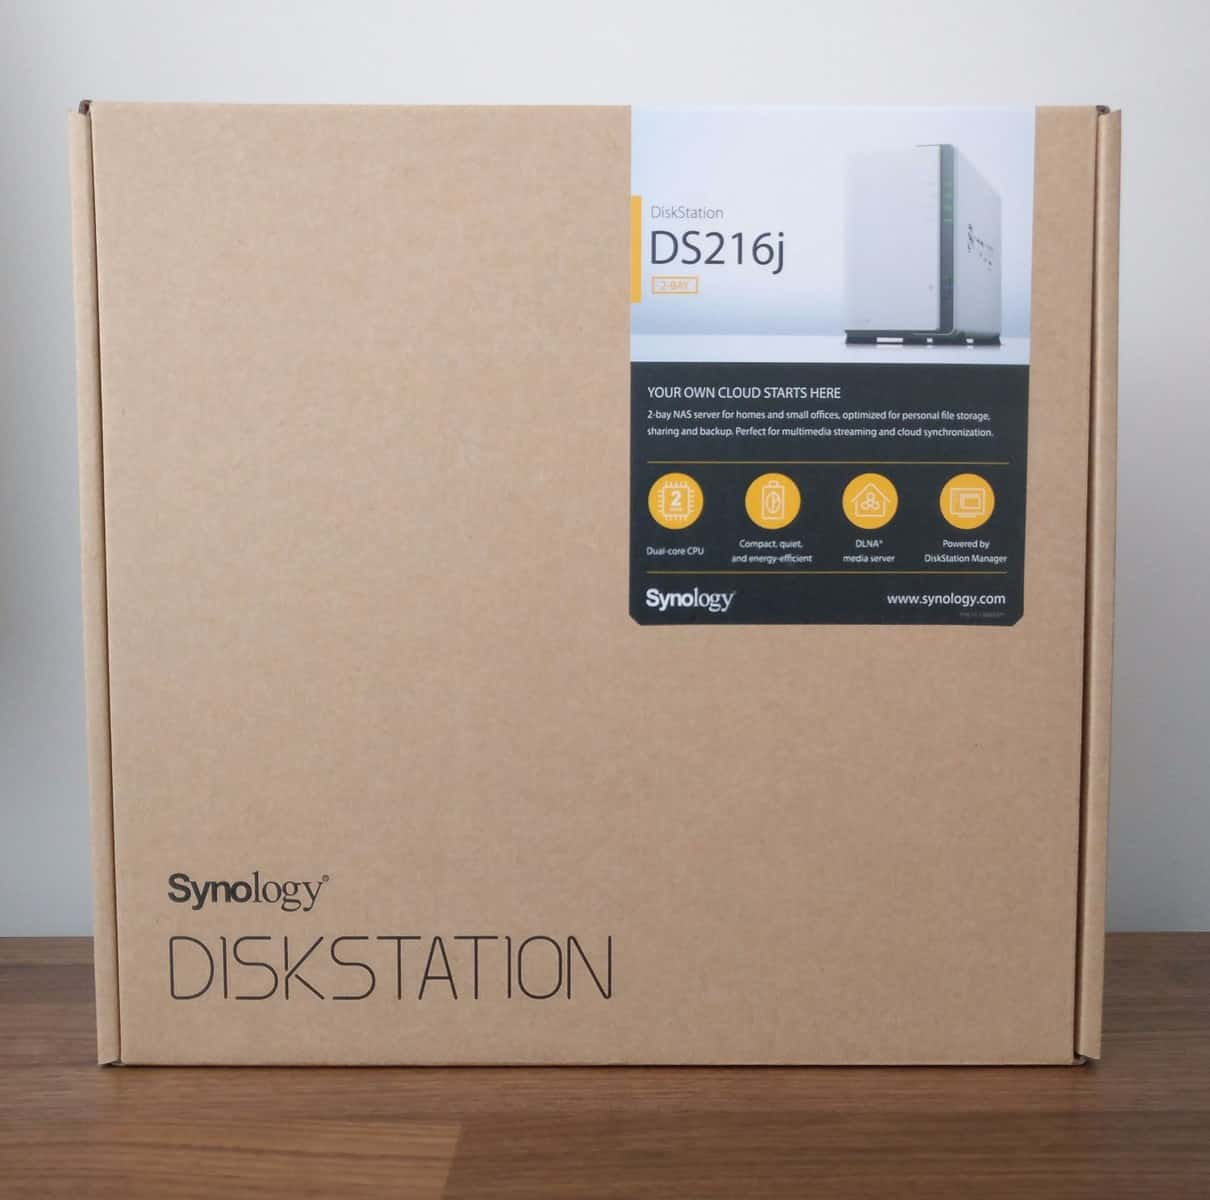 Synology-DS216J-NAS-Photos-01 Synology DS216J 2 Bay NAS Review - The Perfect Backup Solution